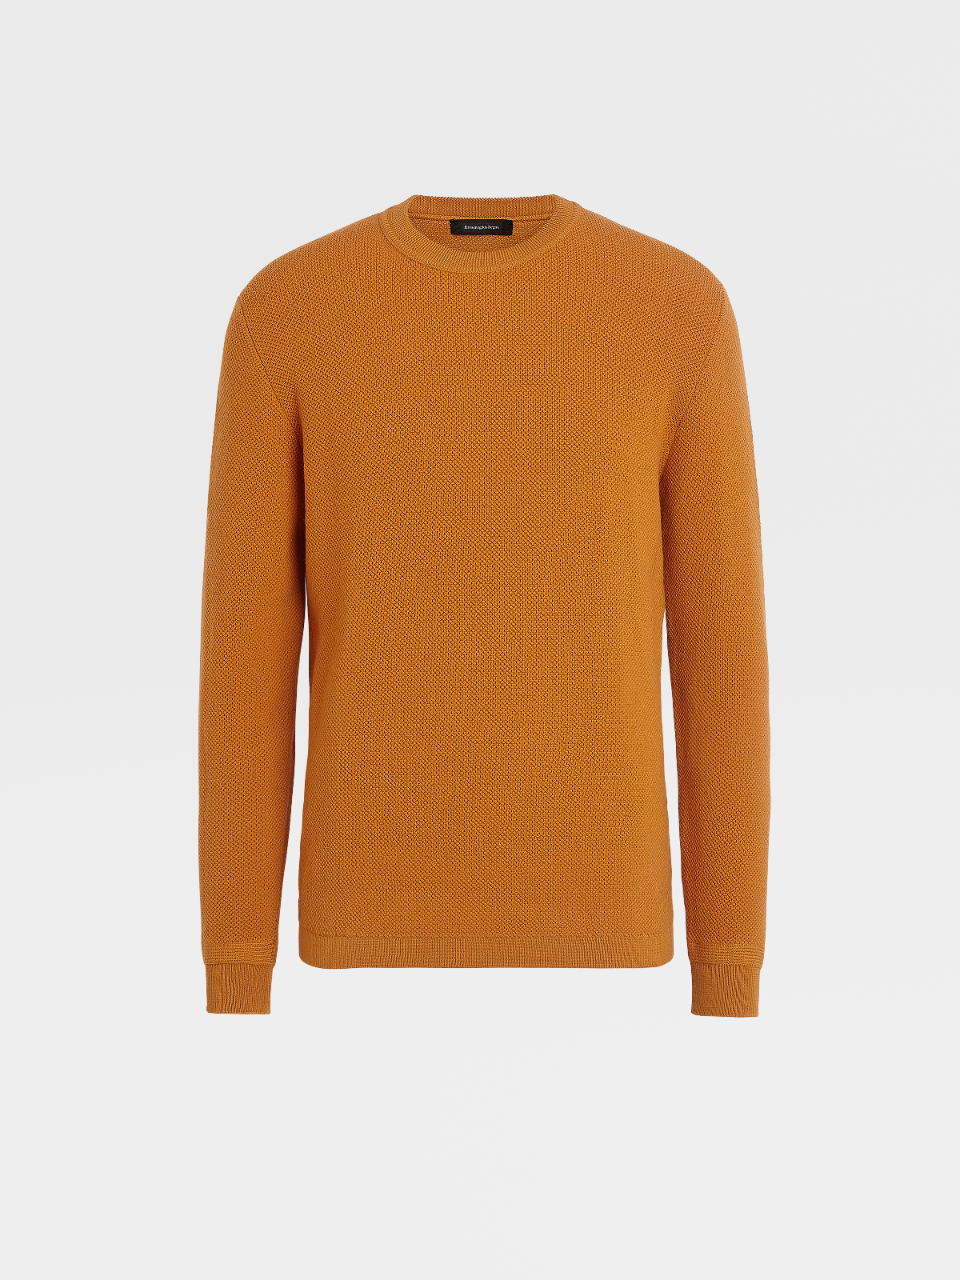 Wool And Cashmere Knit Crewneck